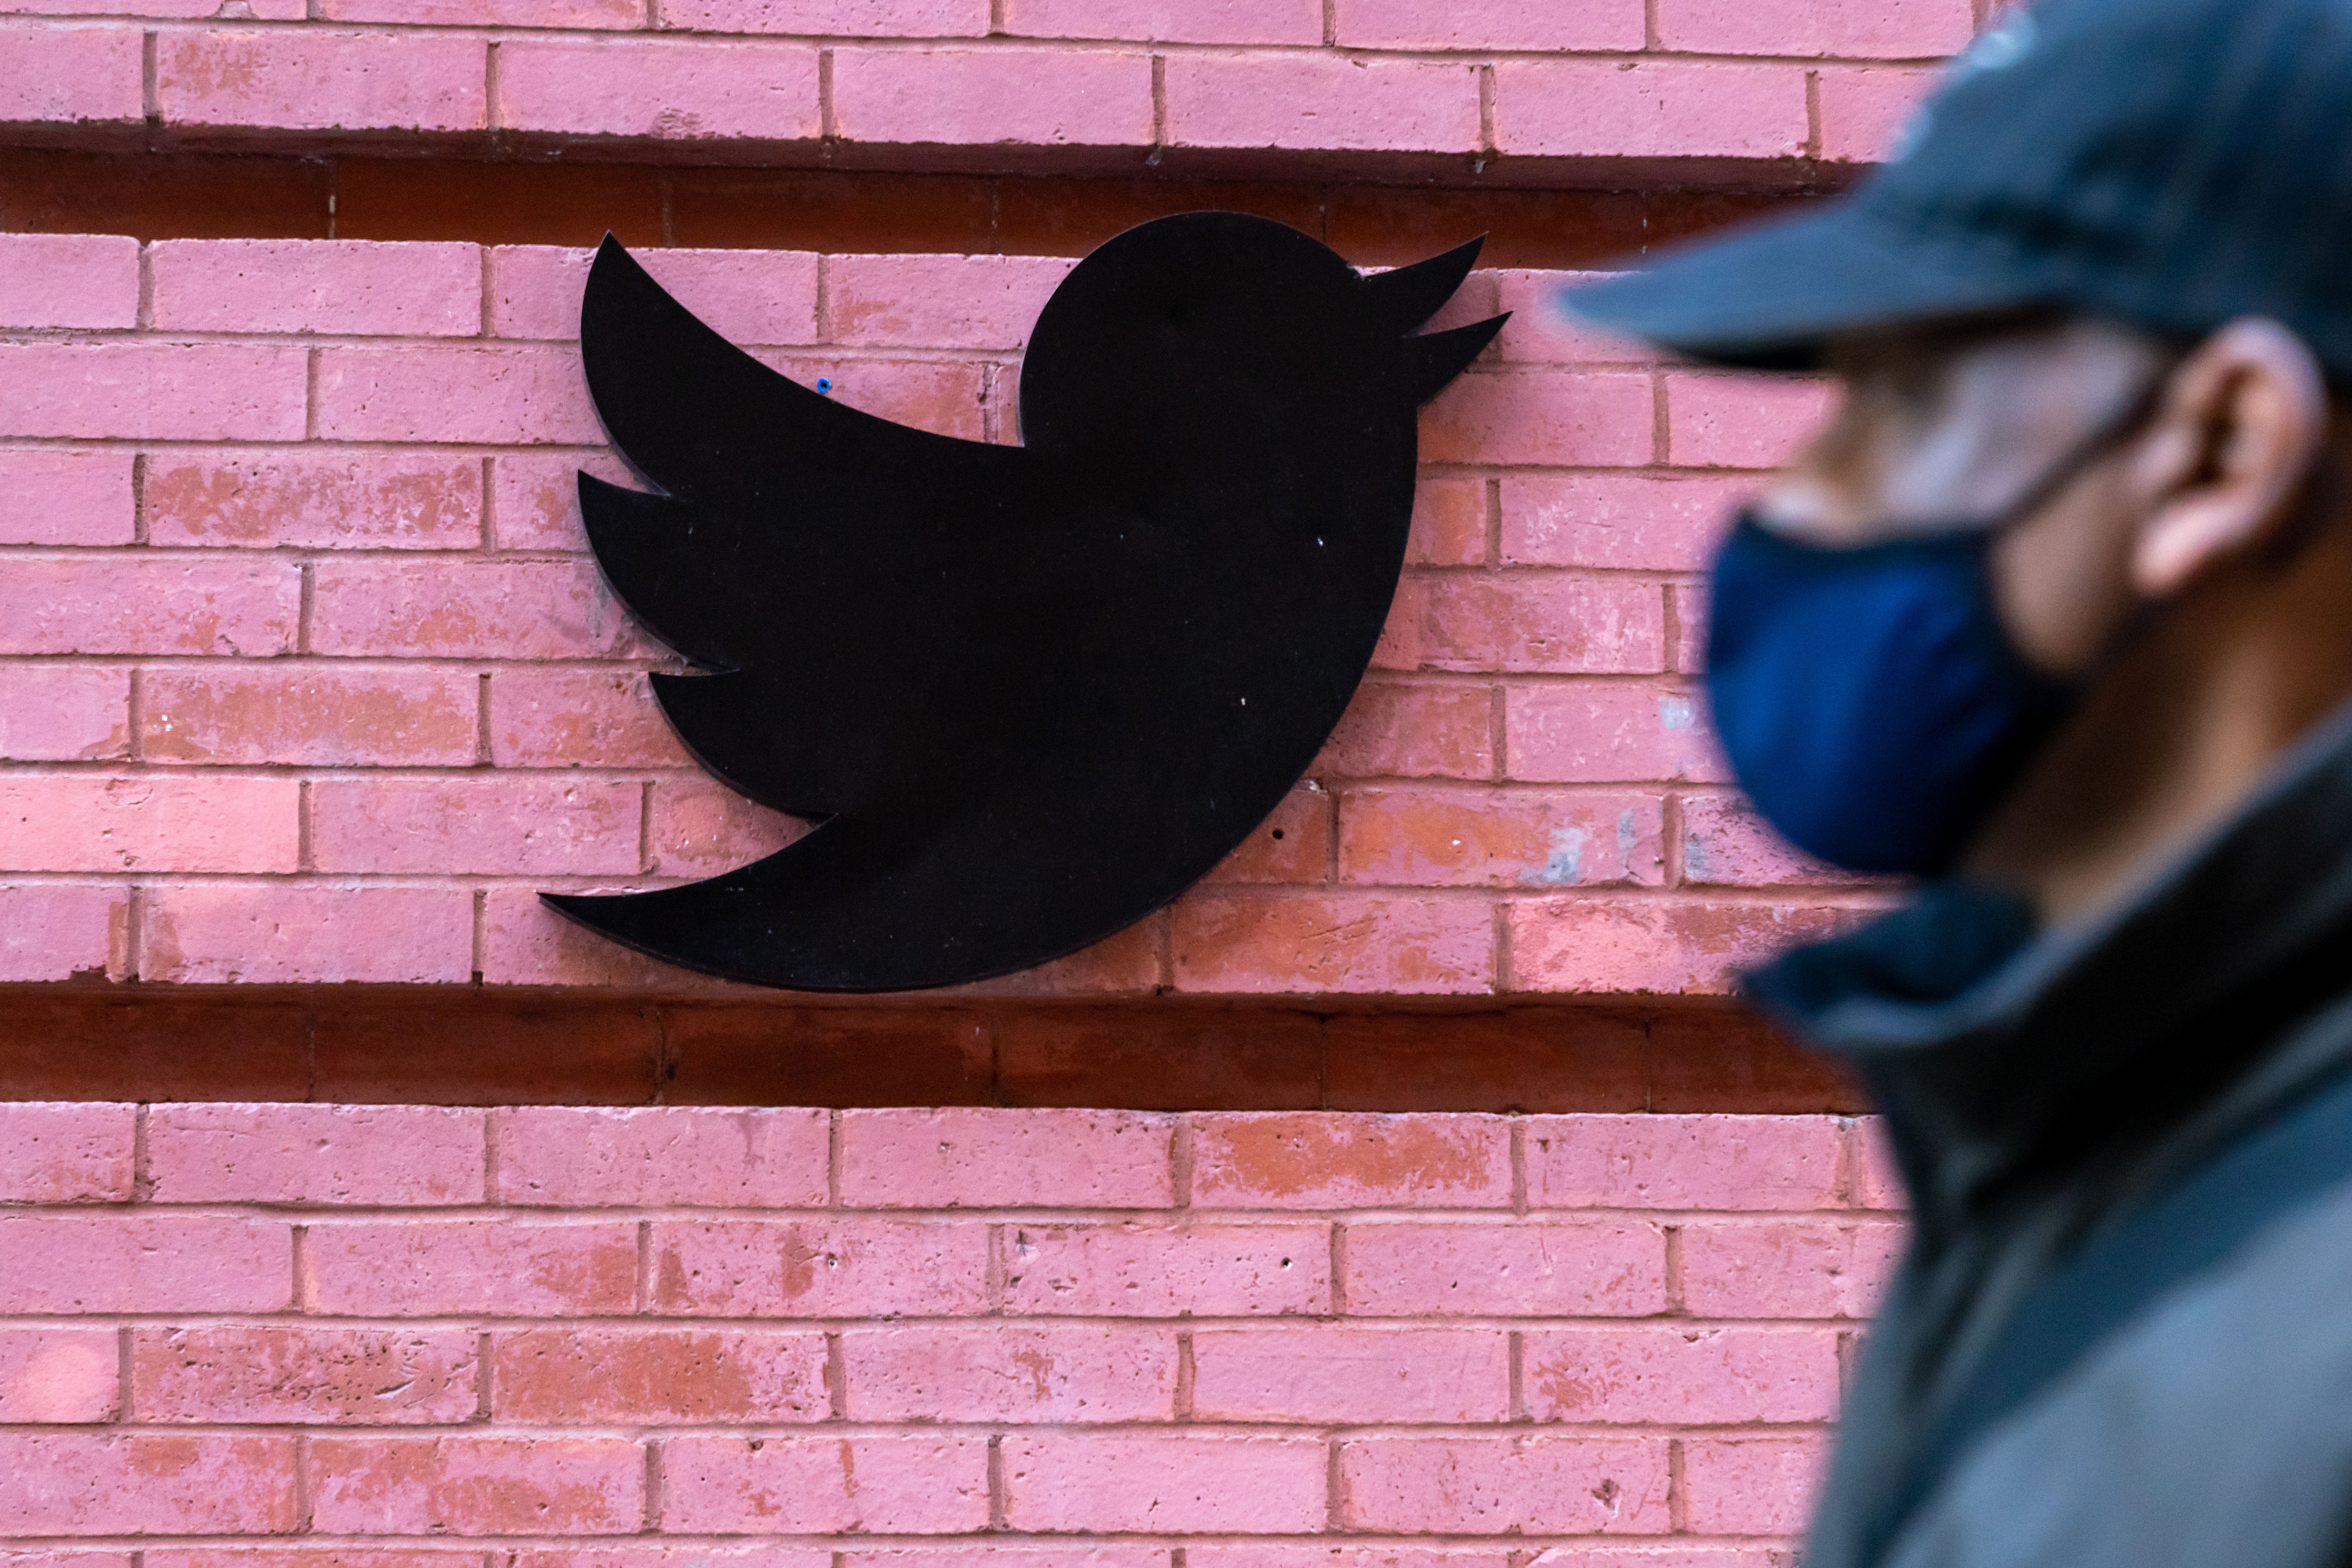 A man wearing a face mask walks past a Twitter logo on the side of a building.